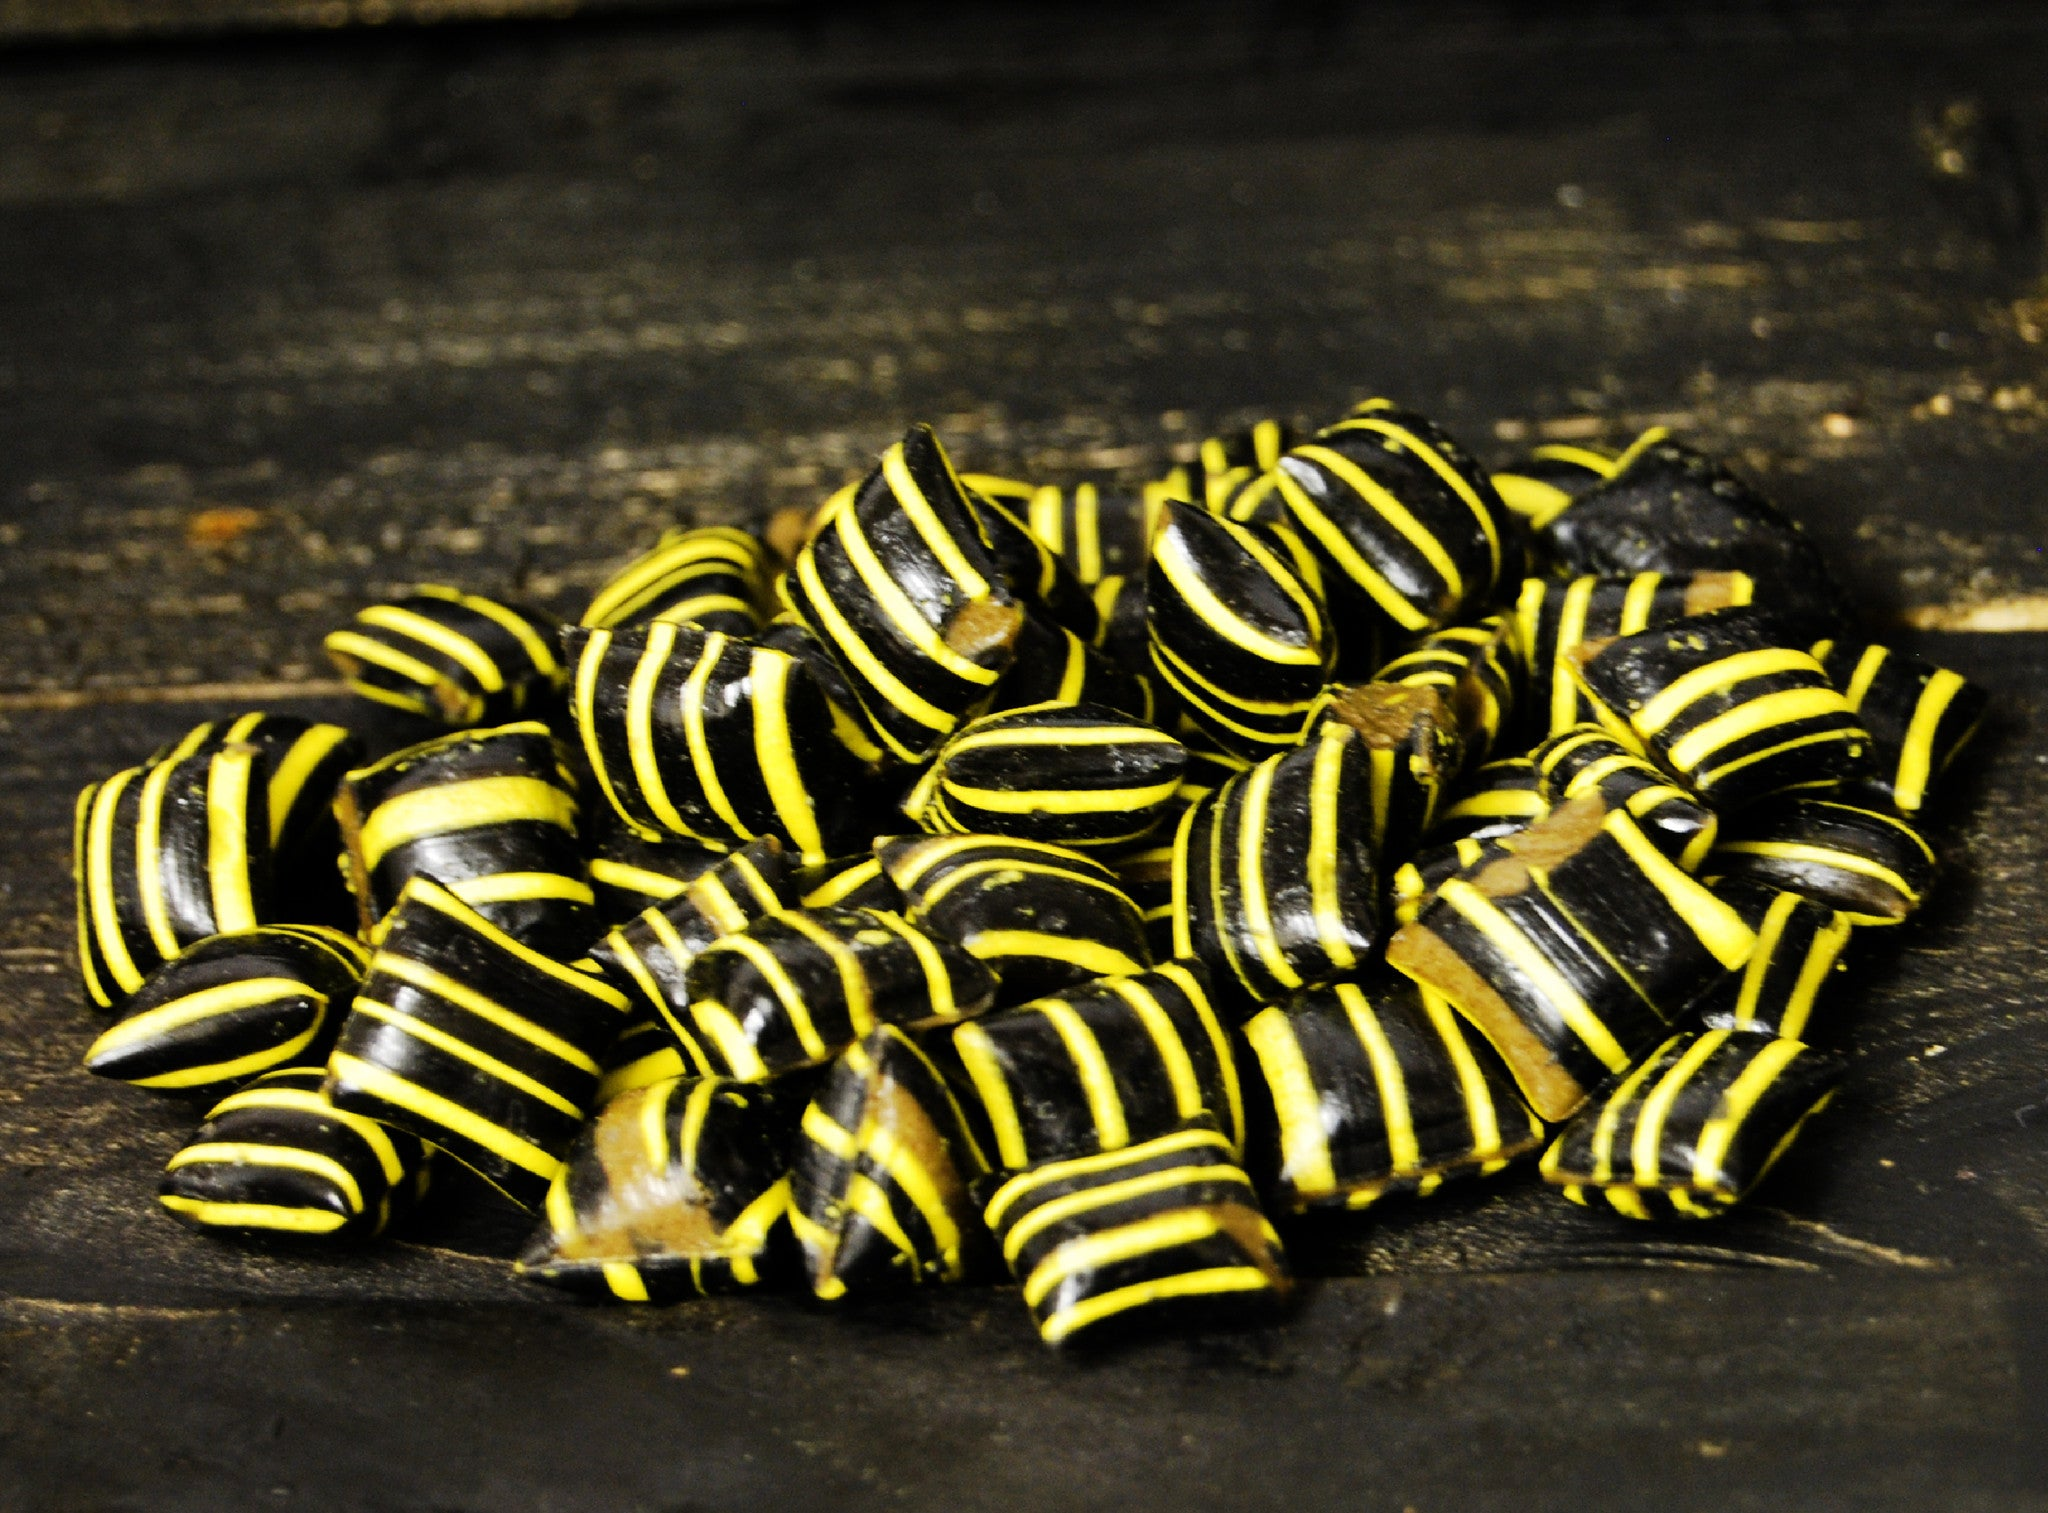 Salted Liquorice and Chill Wasps